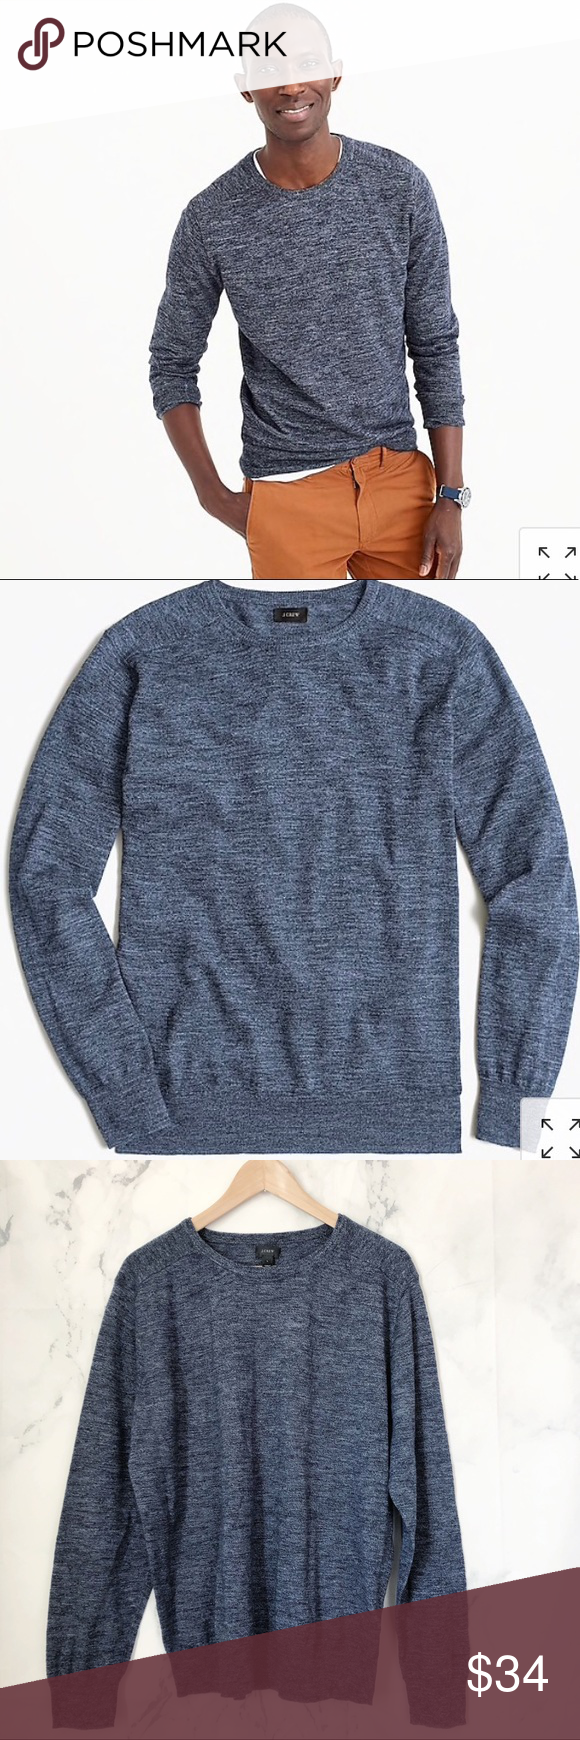 a32e8164aba J. Crew men s Cotton-linen blend heather sweater Cotton-linen blend heather  crewneck sweater Before there were synthetic fabrics to beat the heat